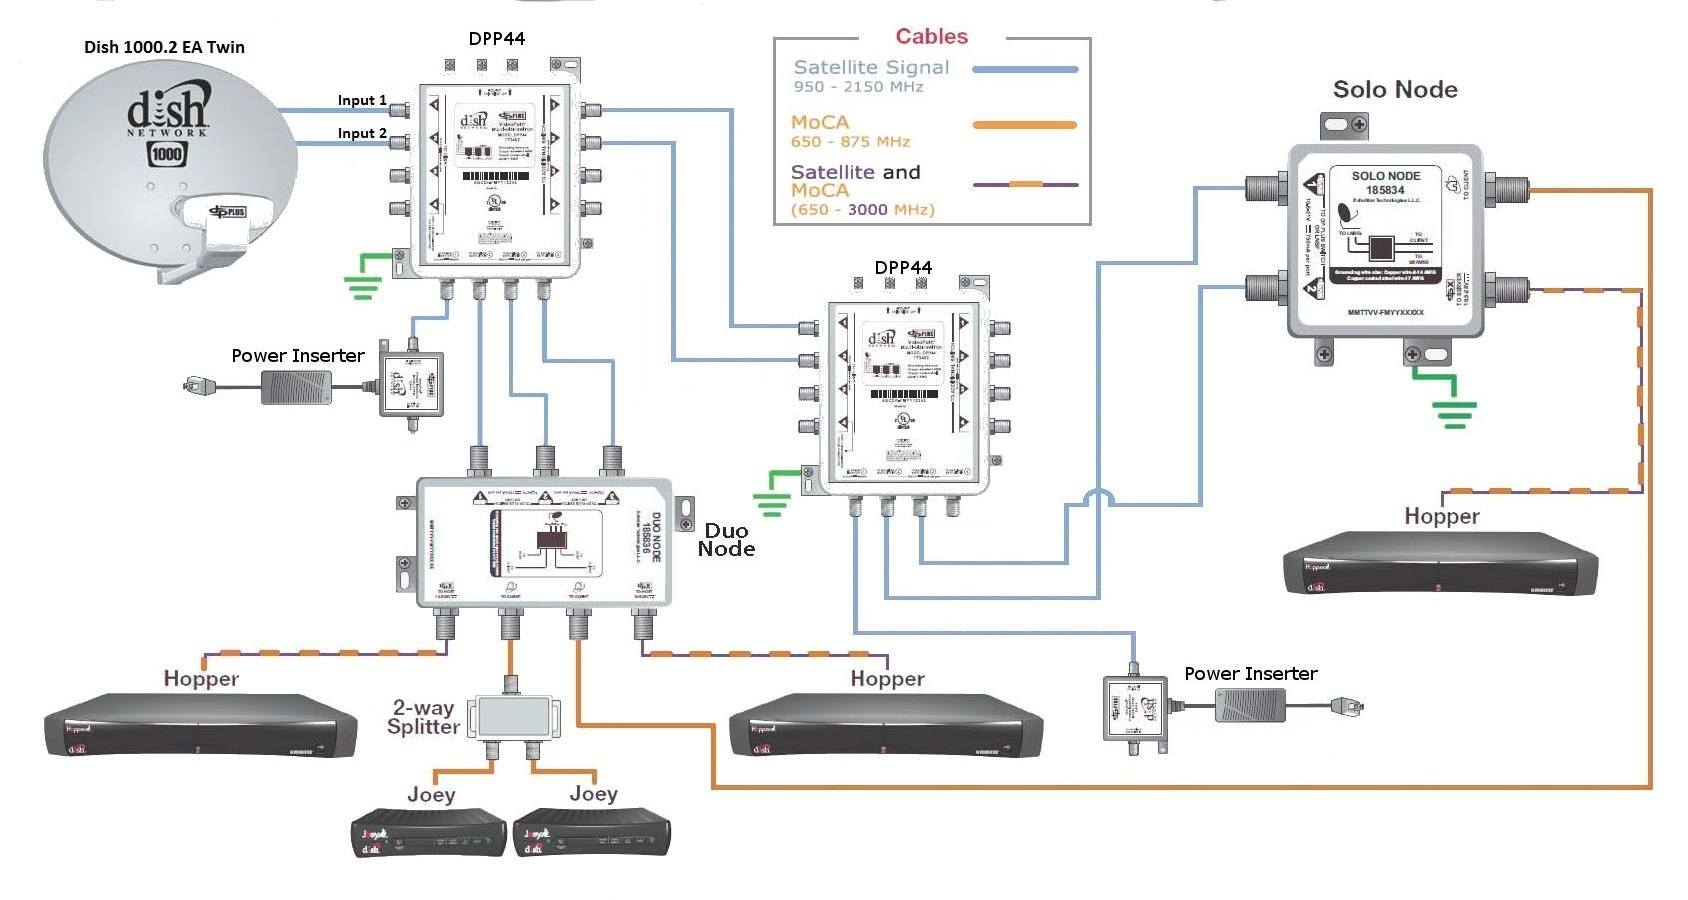 hopper wiring diagram dish network hopper installation \u2022 wiring  at mr168.co